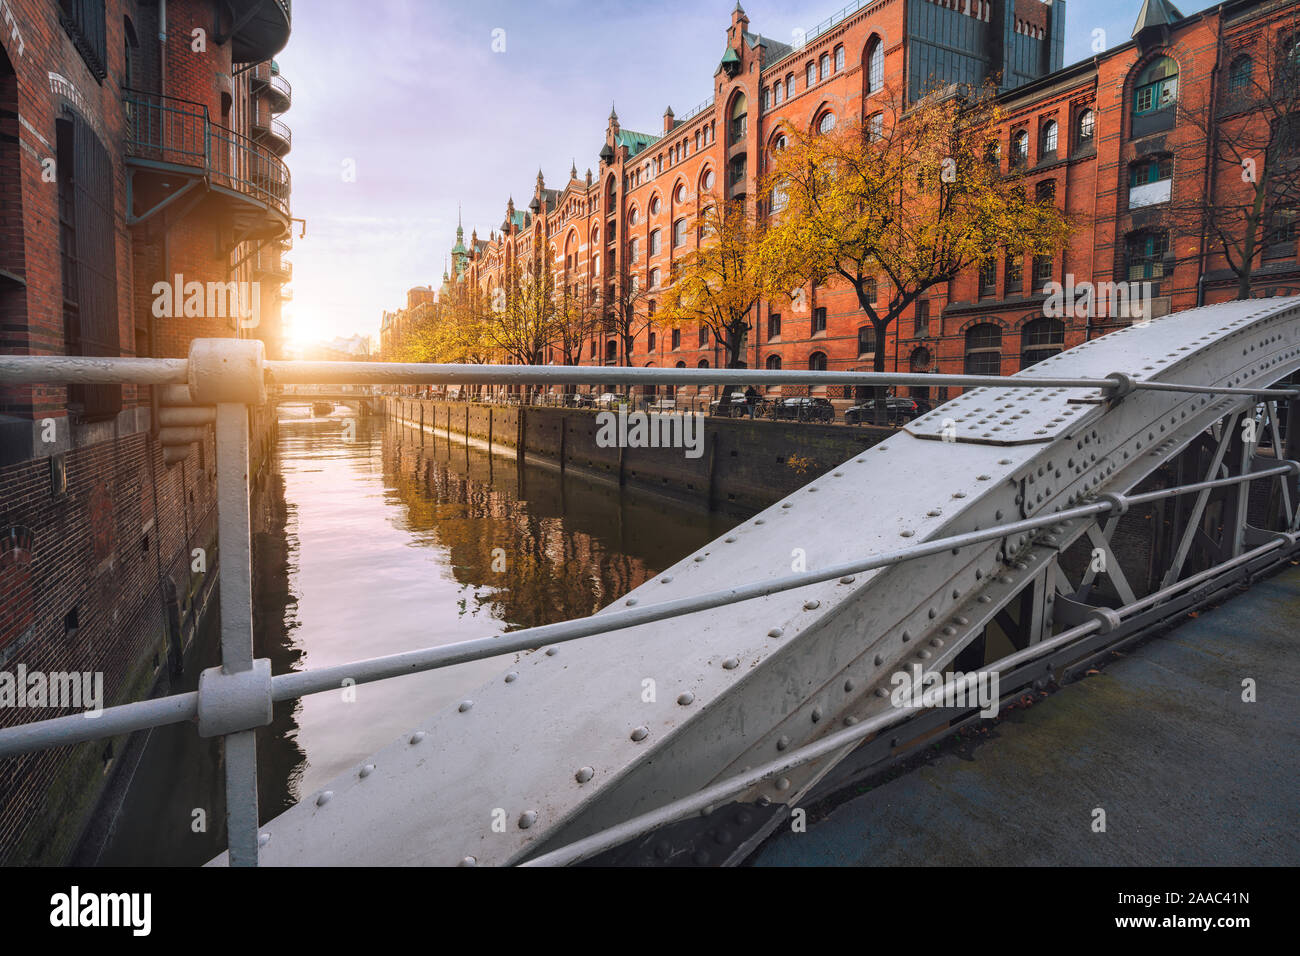 Arch bridge over canals in the Speicherstadt of Hamburg, Germany, Europe. Historical red brick building lit by warm soft golden sunset light. Stock Photo